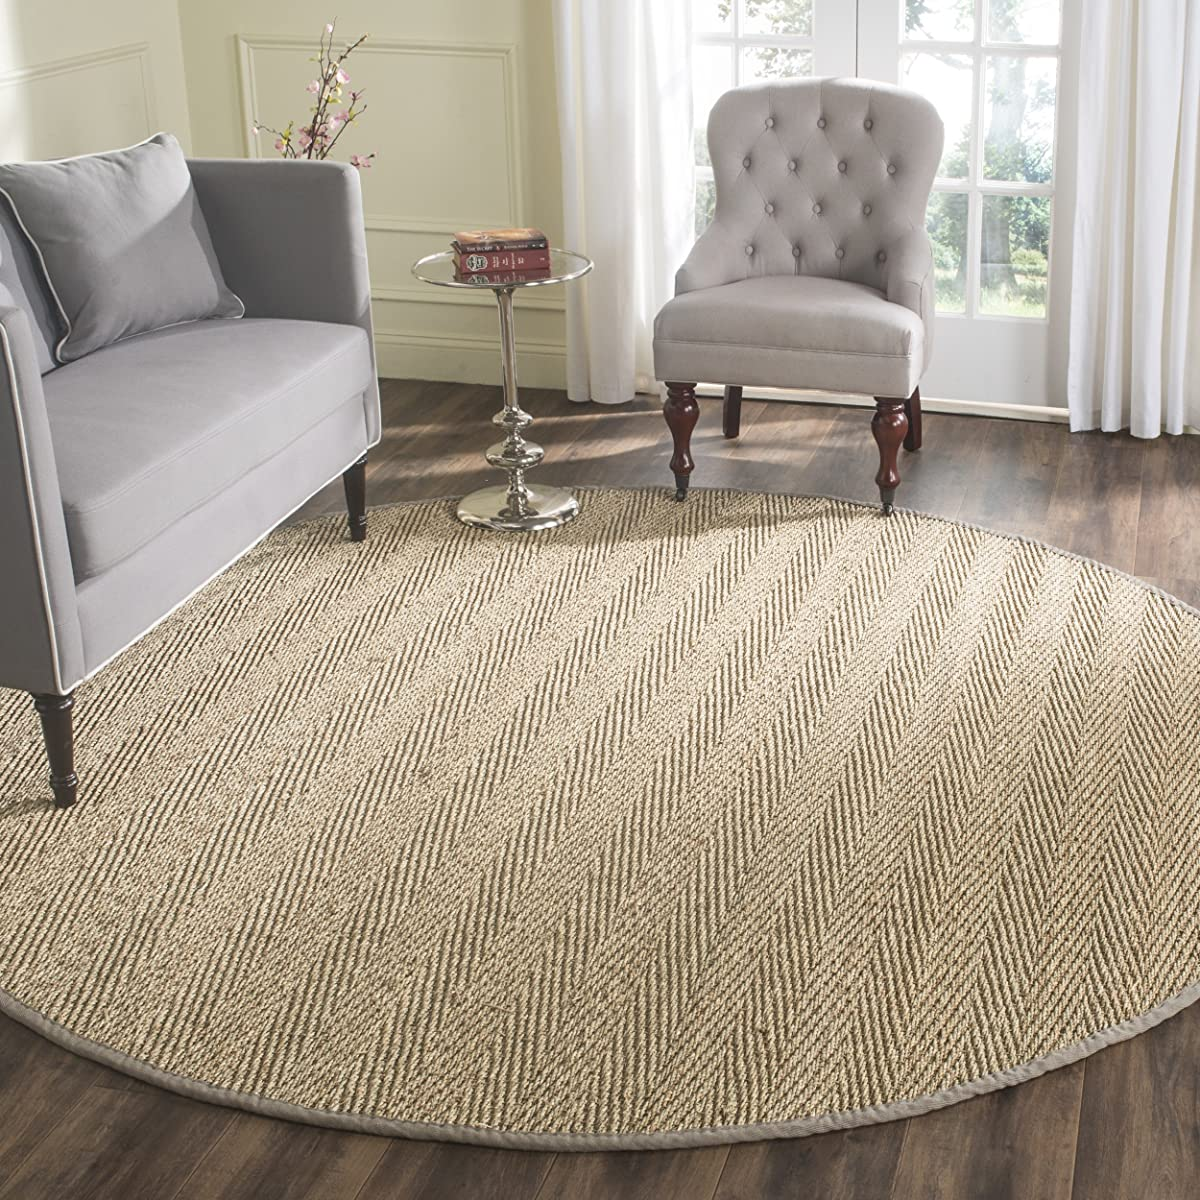 Safavieh Natural Fiber Collection NF115P Herringbone Natural and Grey Seagrass Round Area Rug (8 Diameter)